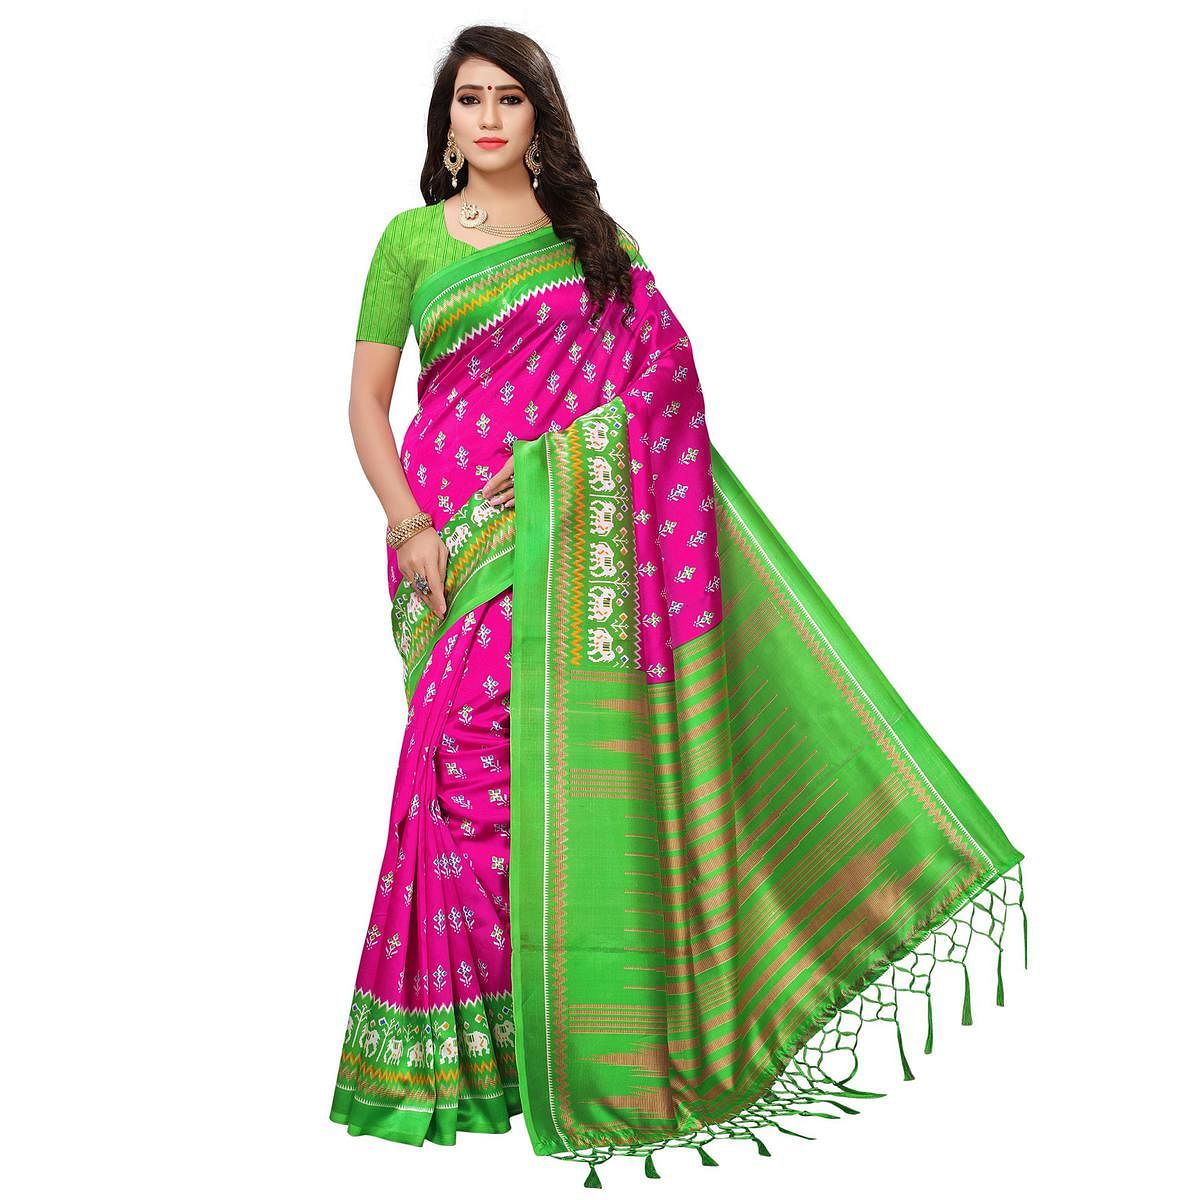 Lovely Pink-Green Colored Printed Festive Wear Mysore Art Silk Saree